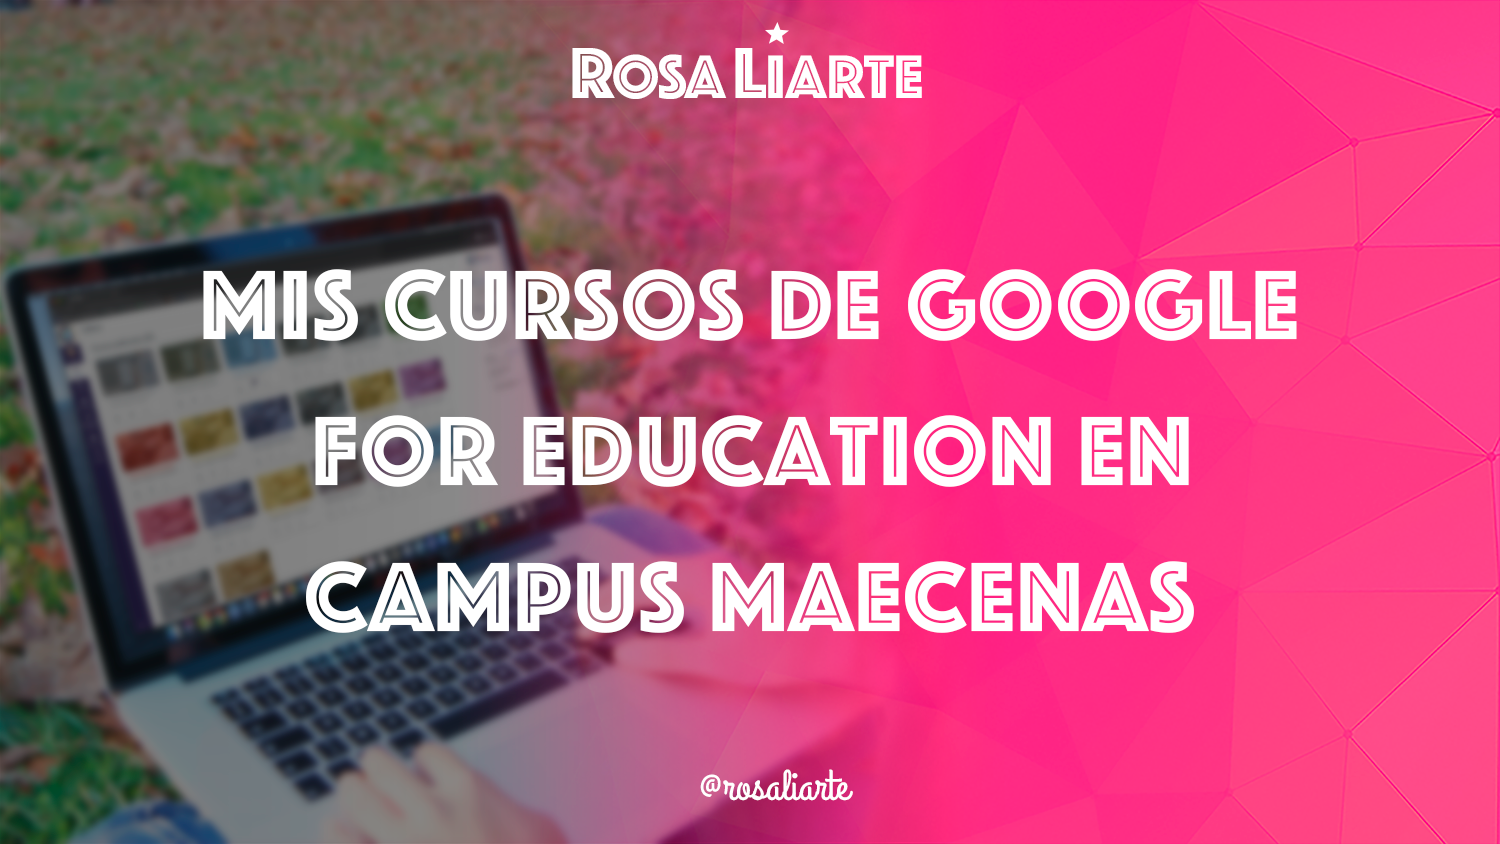 Mis cursos de Google for Education en Campus Maecenas